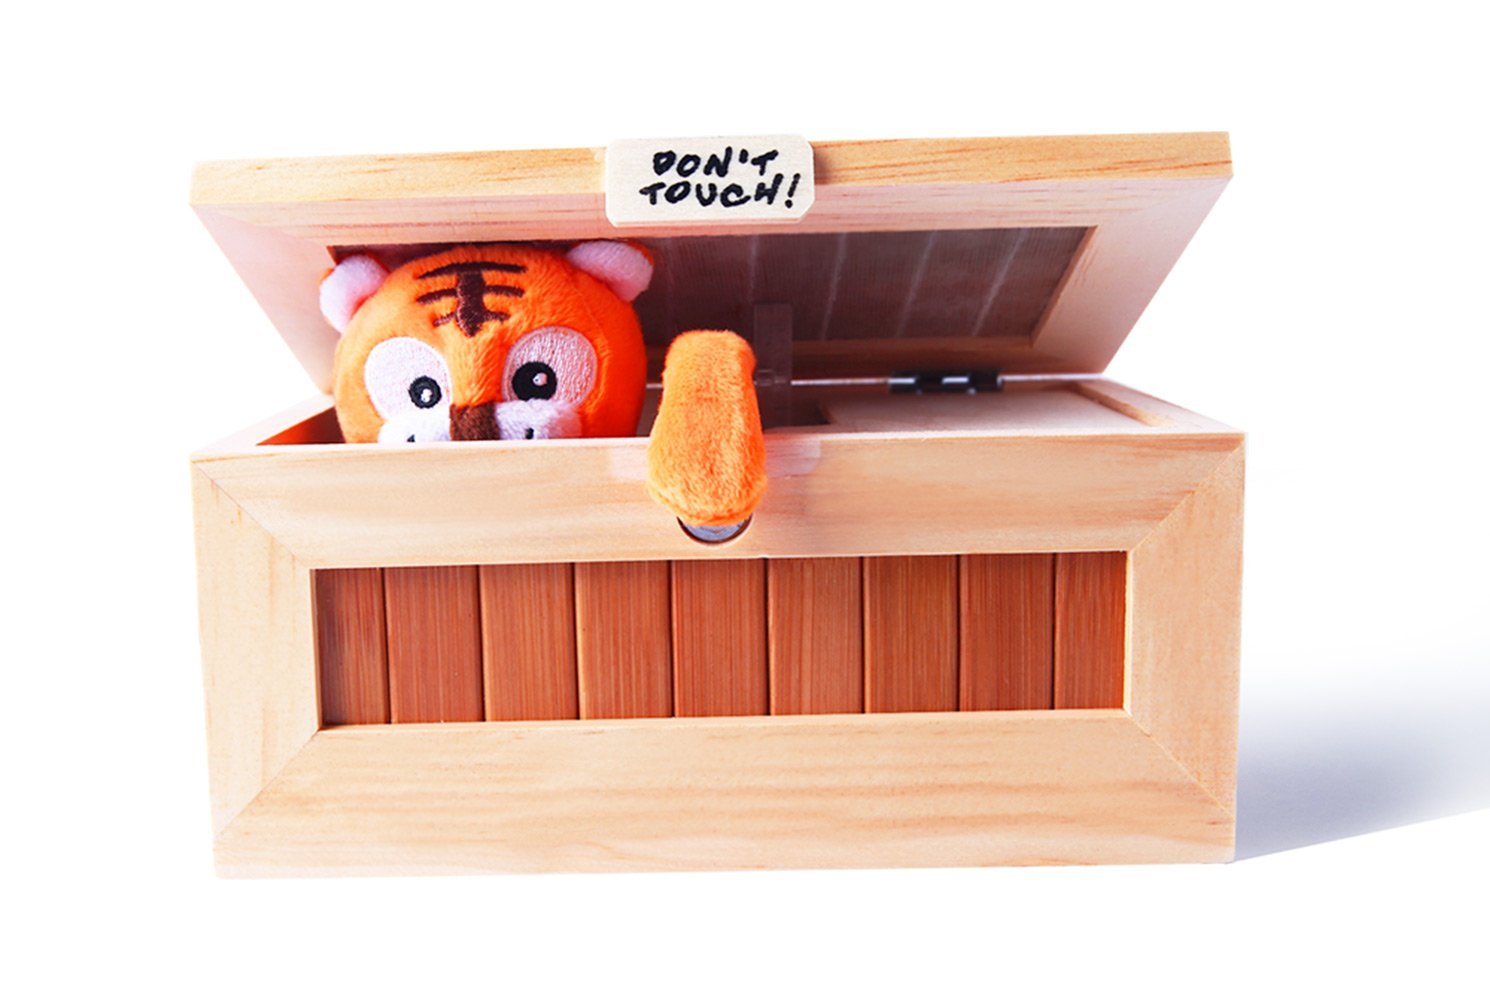 Useless box with toy tiger inside